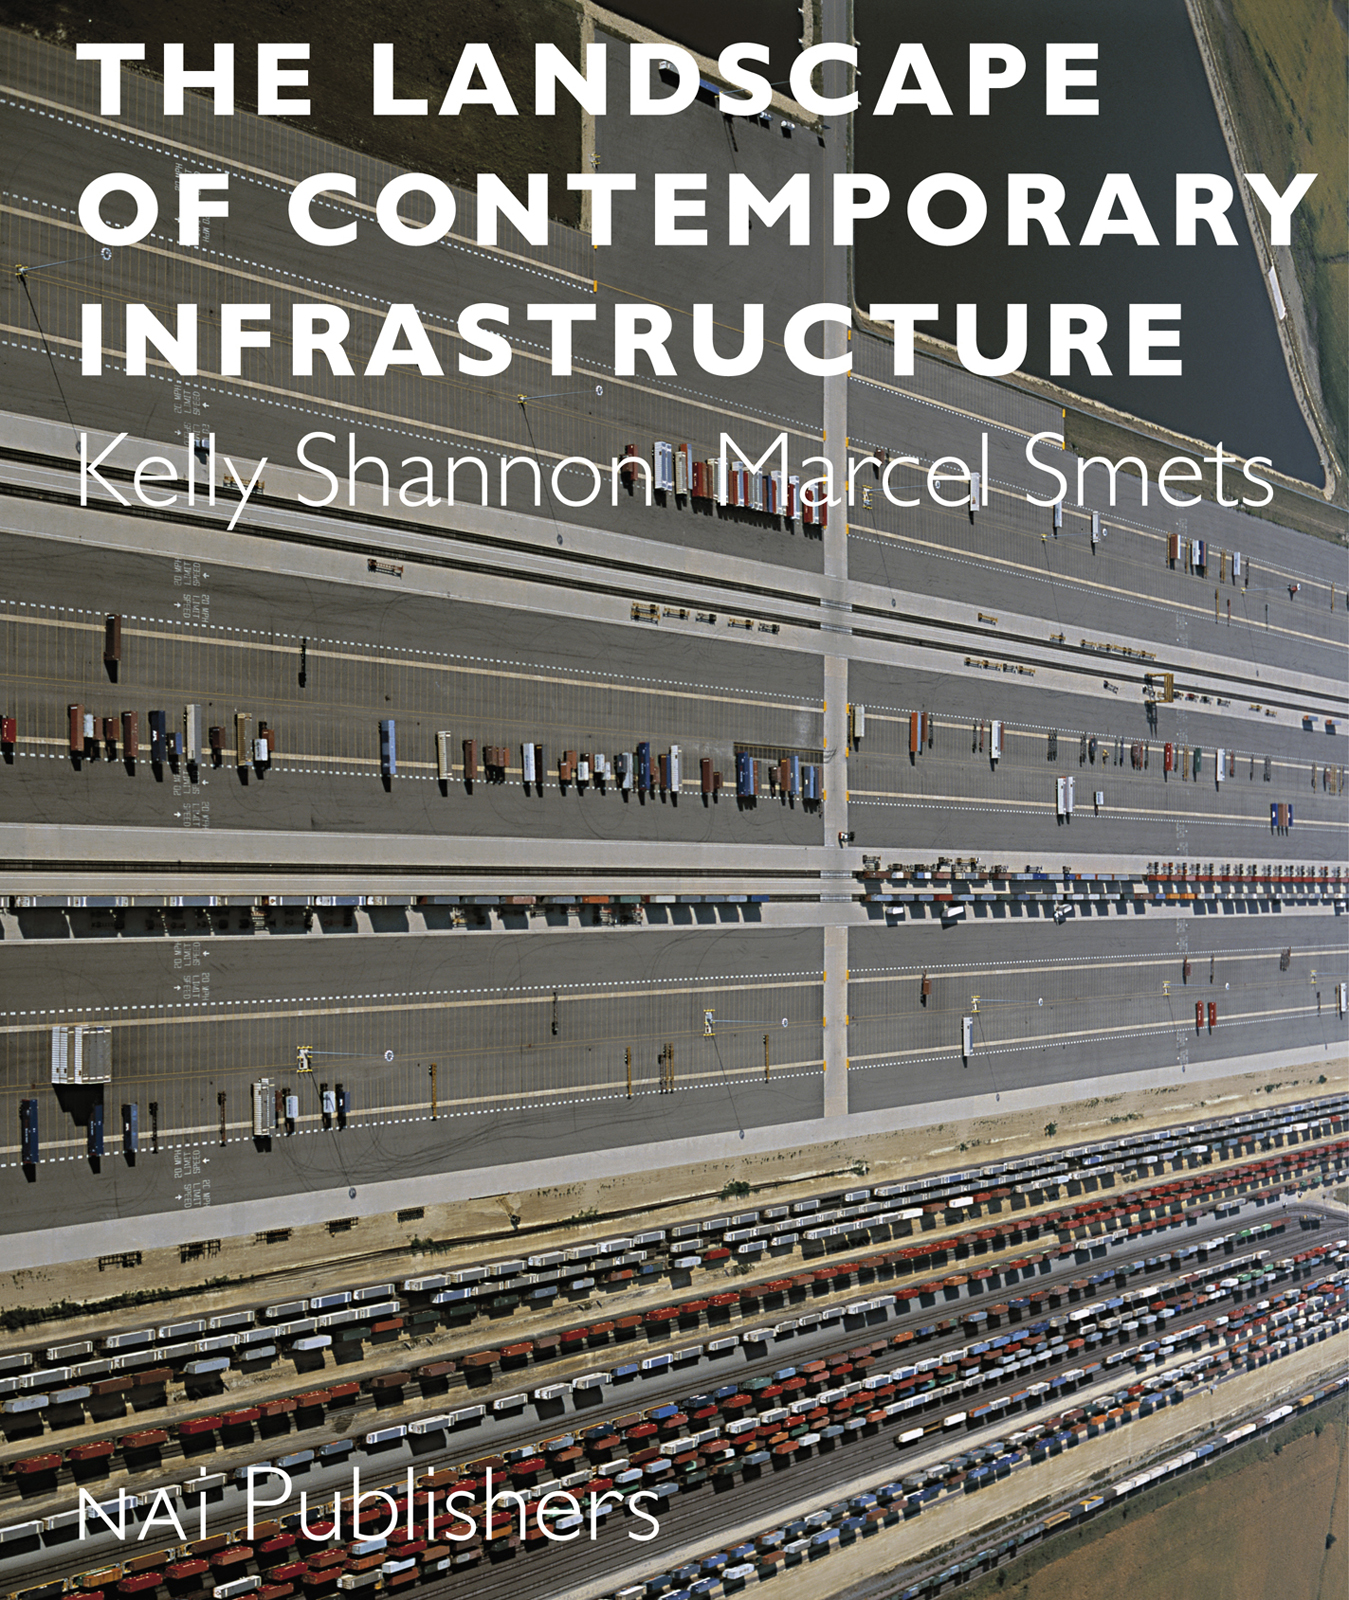 The Landscape of Contemporary Infrastructure is due out on March 31st in the US and was written by Kelly Shannon and Marcel Smets, both professors in the Department of Architecture, Urbanism, and Planning at the University of Leuven in the Netherlands.